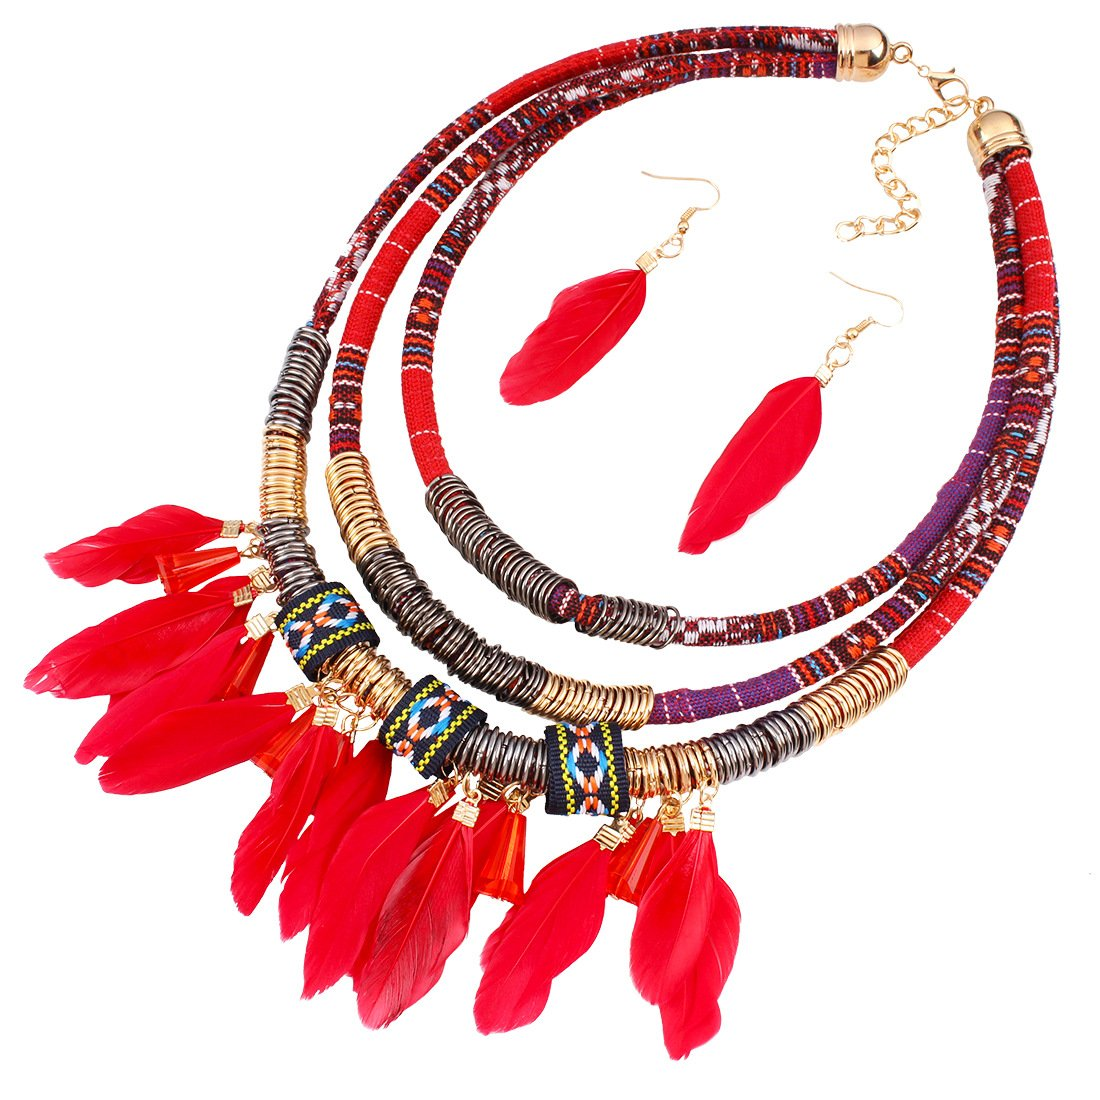 Zaki L'vow Vintage Feather Pendant Multi Layers Tribal Bib Necklace Statement Earring Jewelry Set ne-1